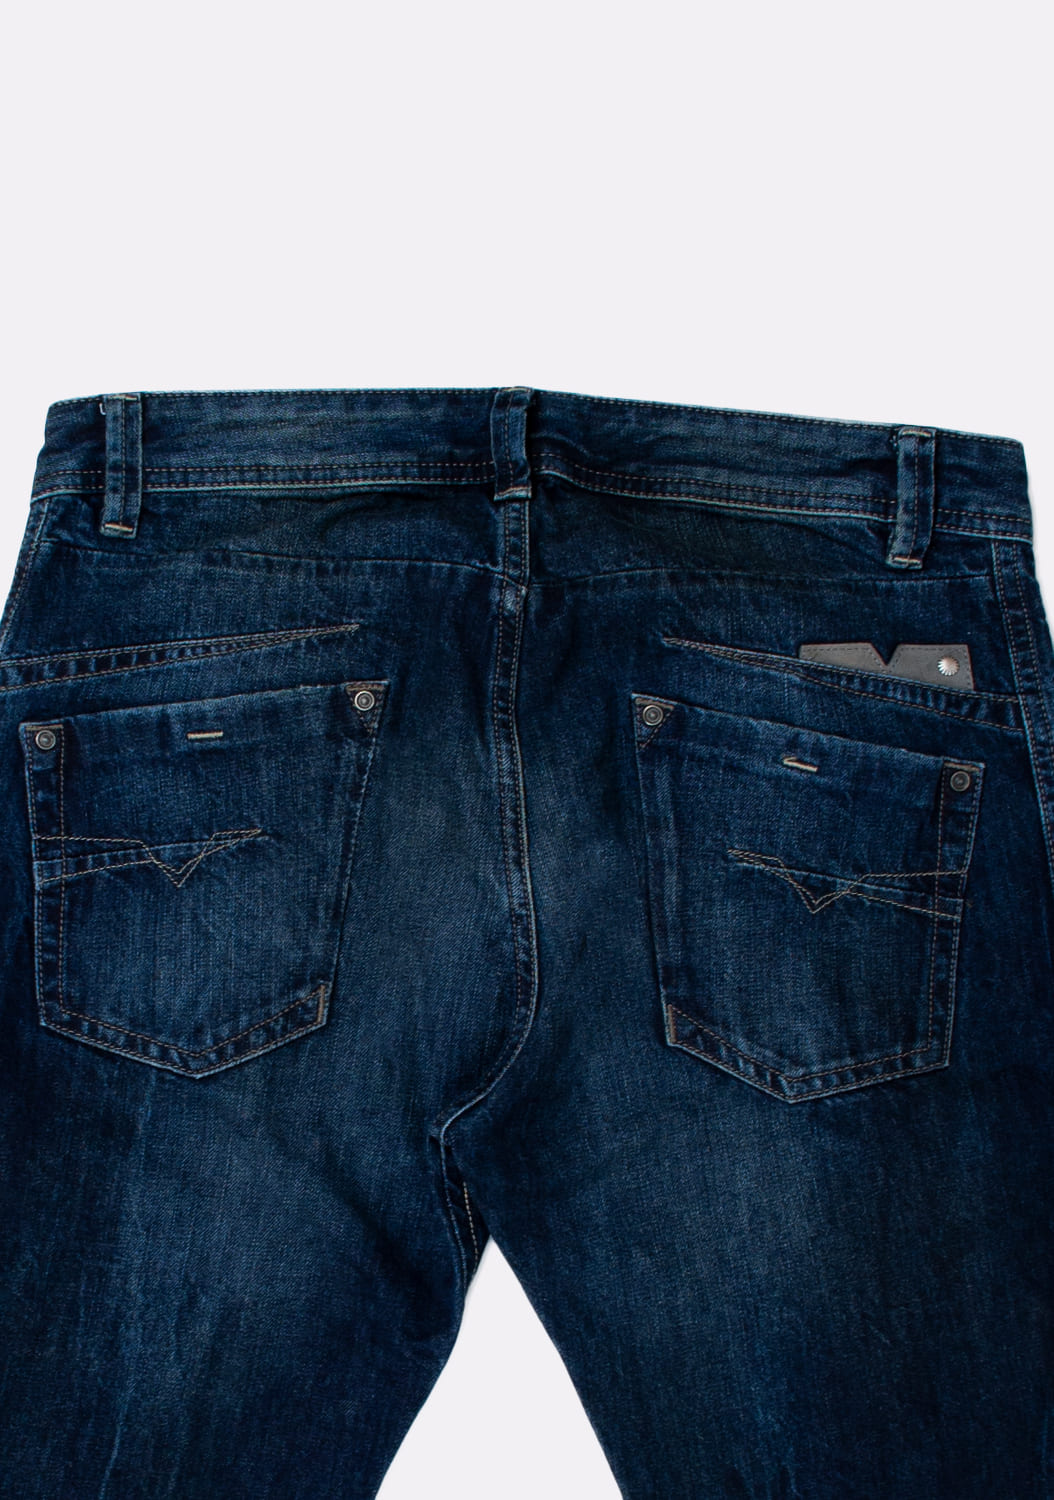 Diesel-Darron-OROLM-Regular-Slim-Tapered-melyni-dzinsai-dydis-30-32 (5)